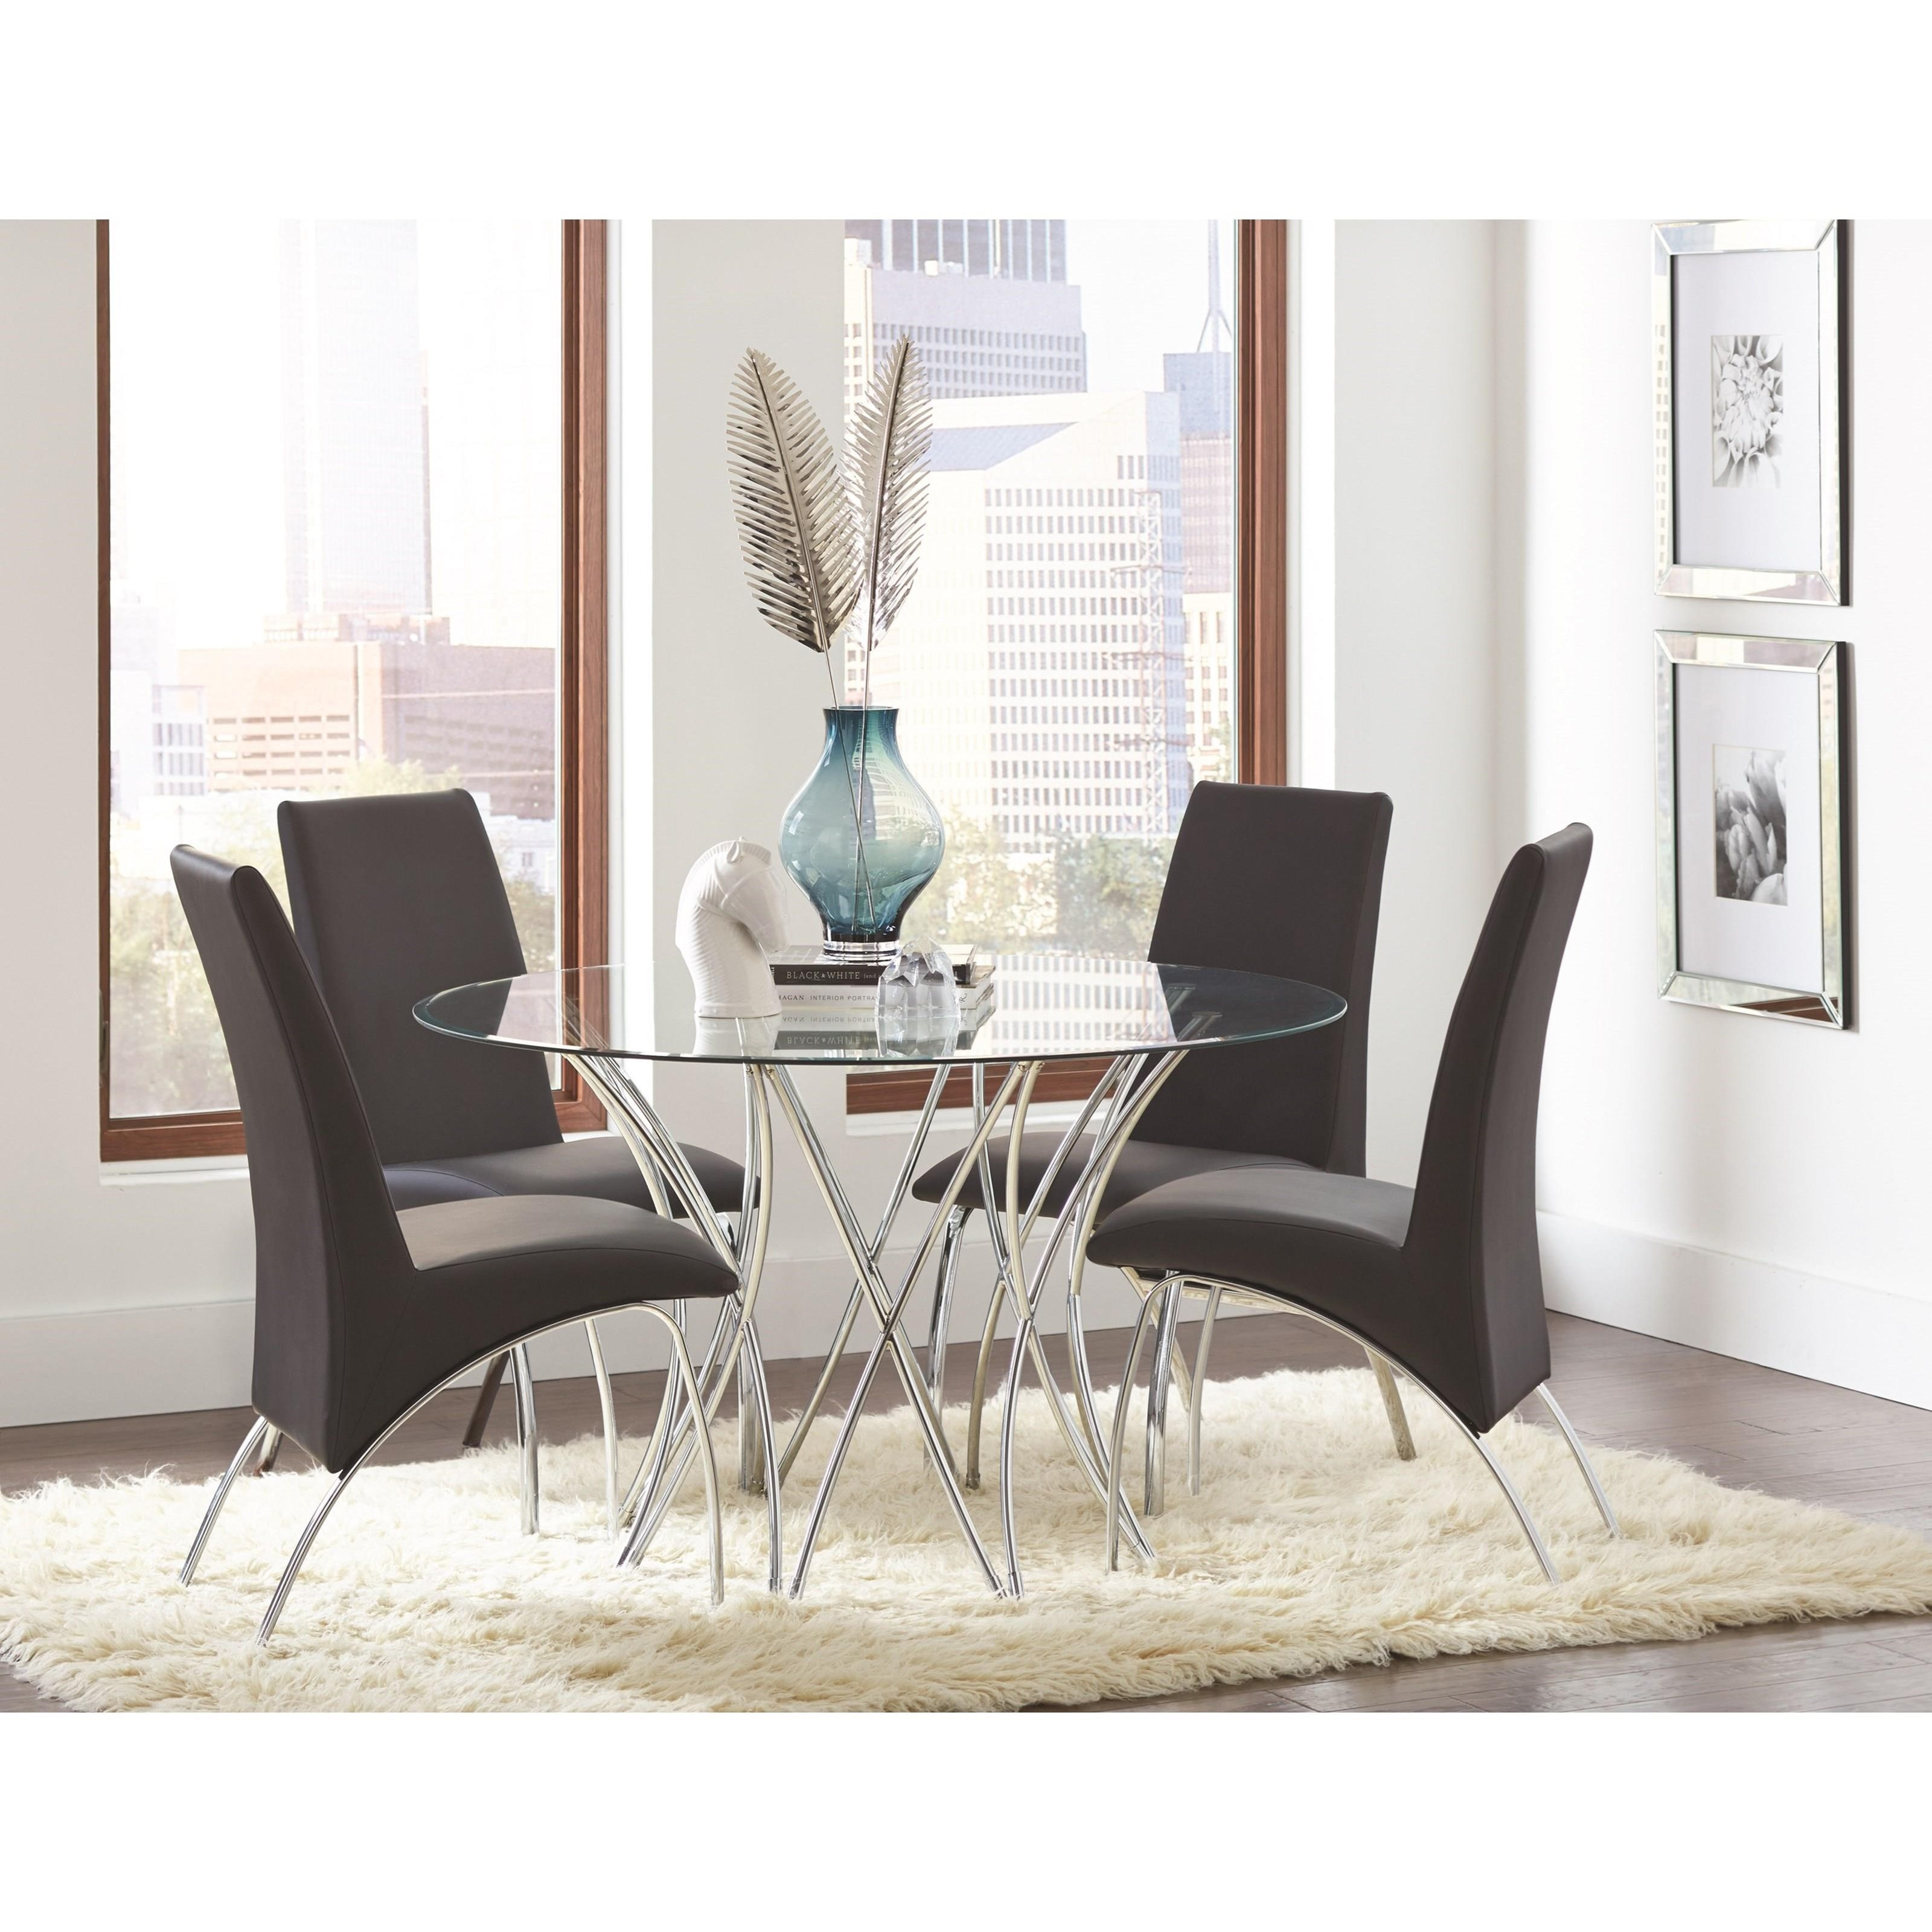 Coaster Carone Contemporary Glam Dining Room Set With: Coaster Cabianca Contemporary Round Glass Dining Table